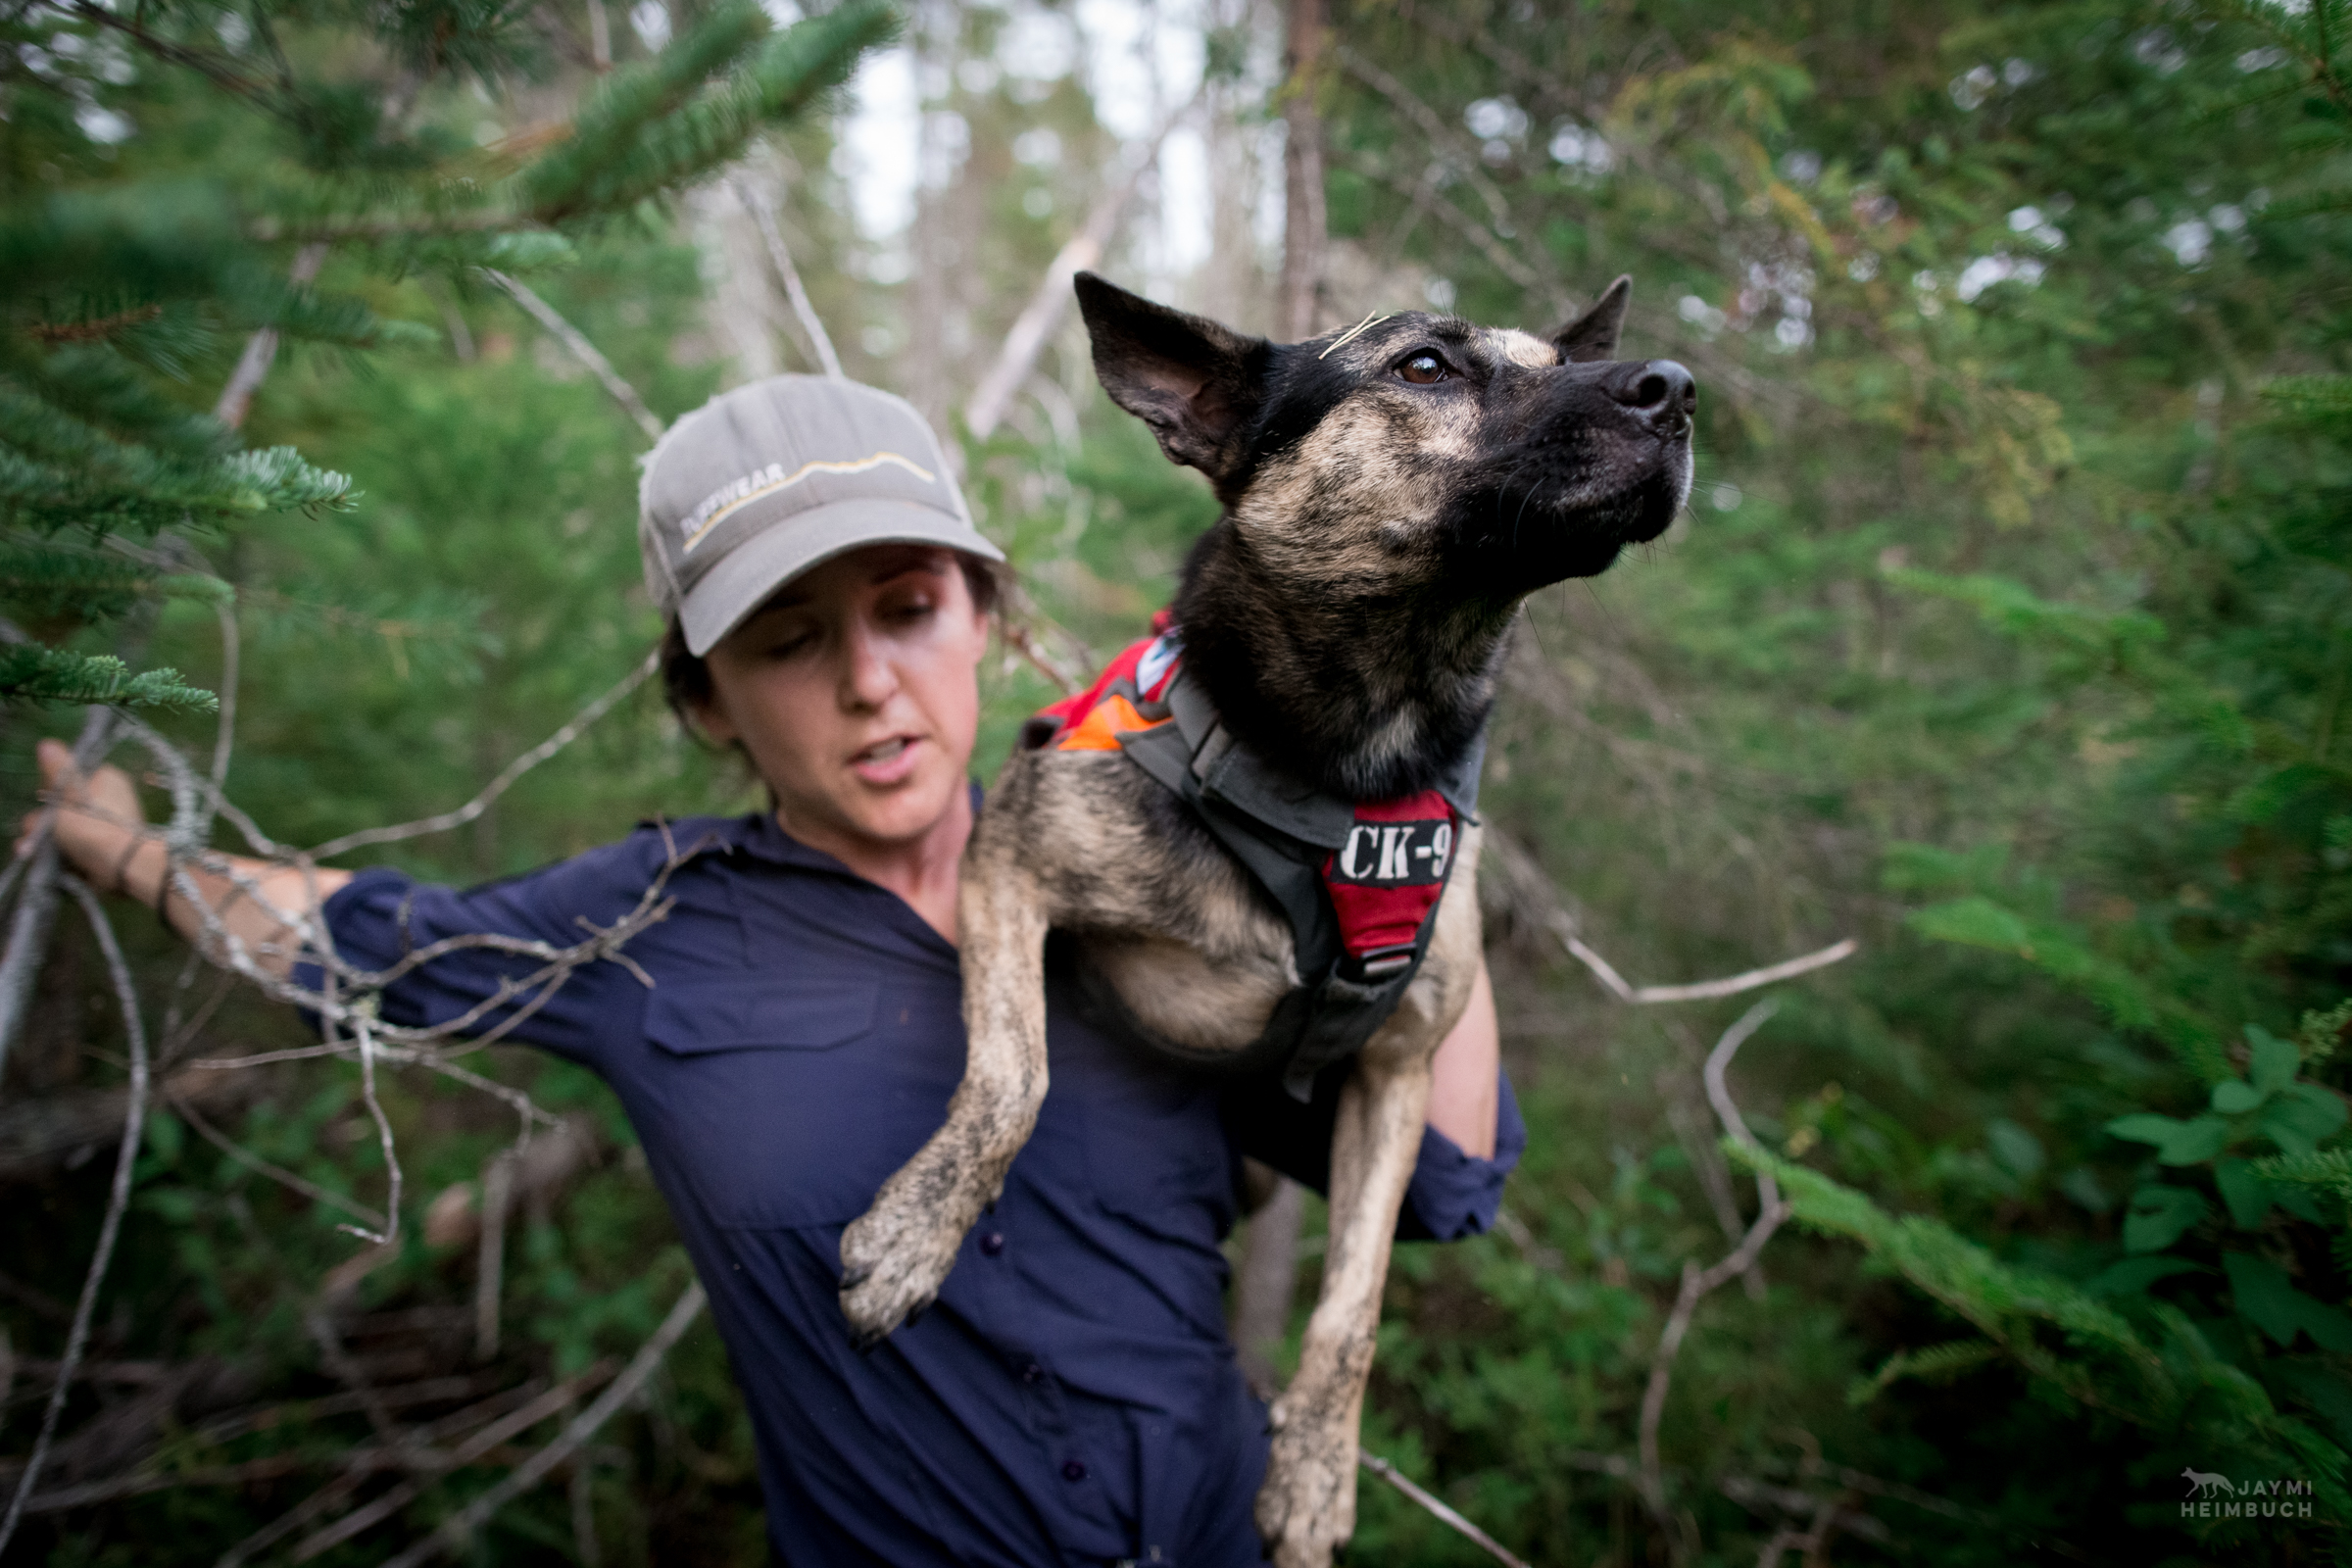 Scent detection dogs (canis lupus familiaris) and handlers often have to go through difficult terrain, and sometimes that means the dog needs to be carried by the handler, as Suzie Marlow demonstrates.